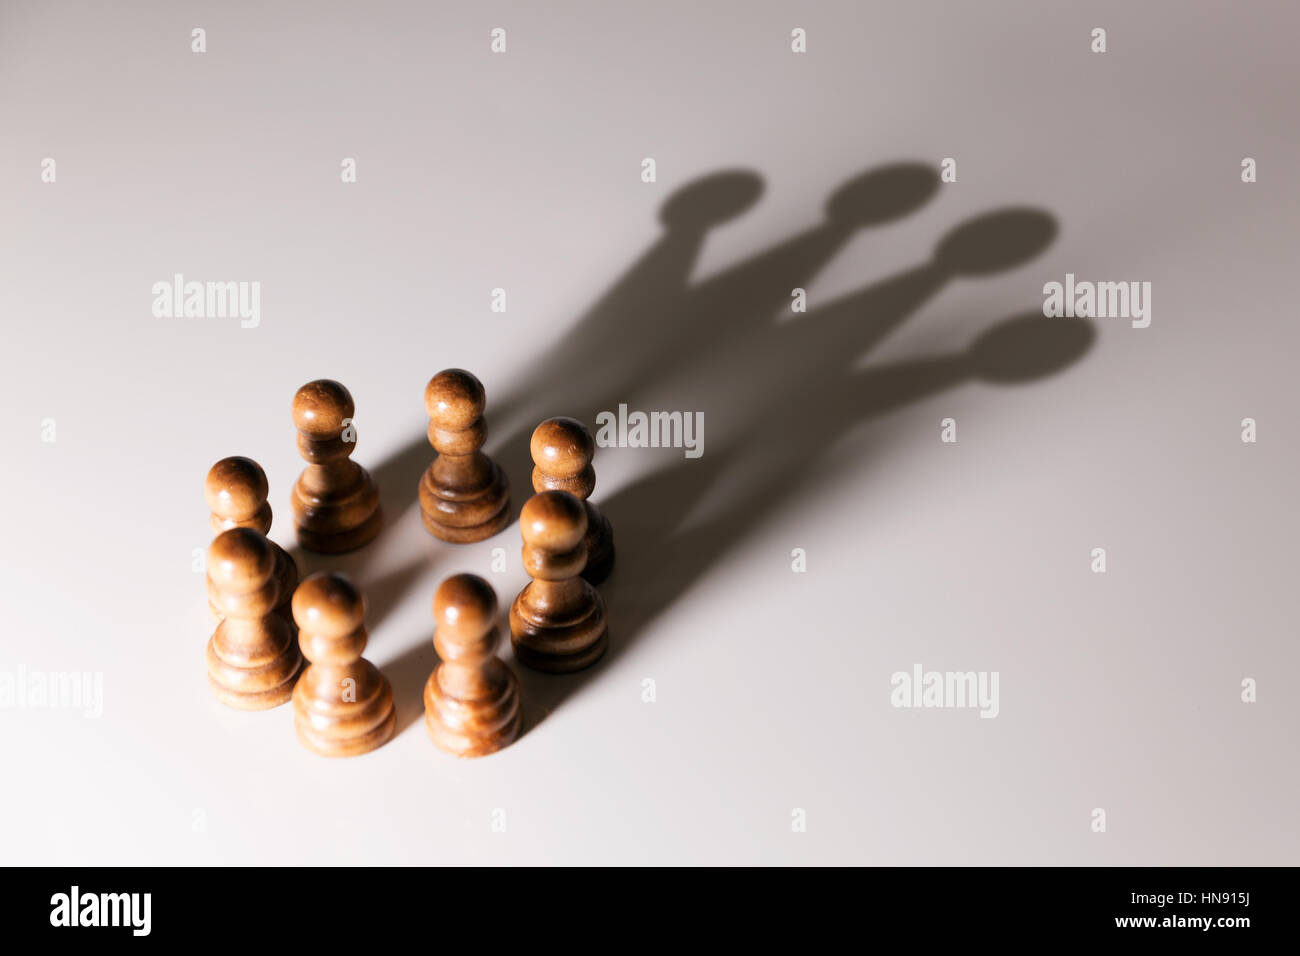 business leadership, teamwork power and confidence concept - Stock Image